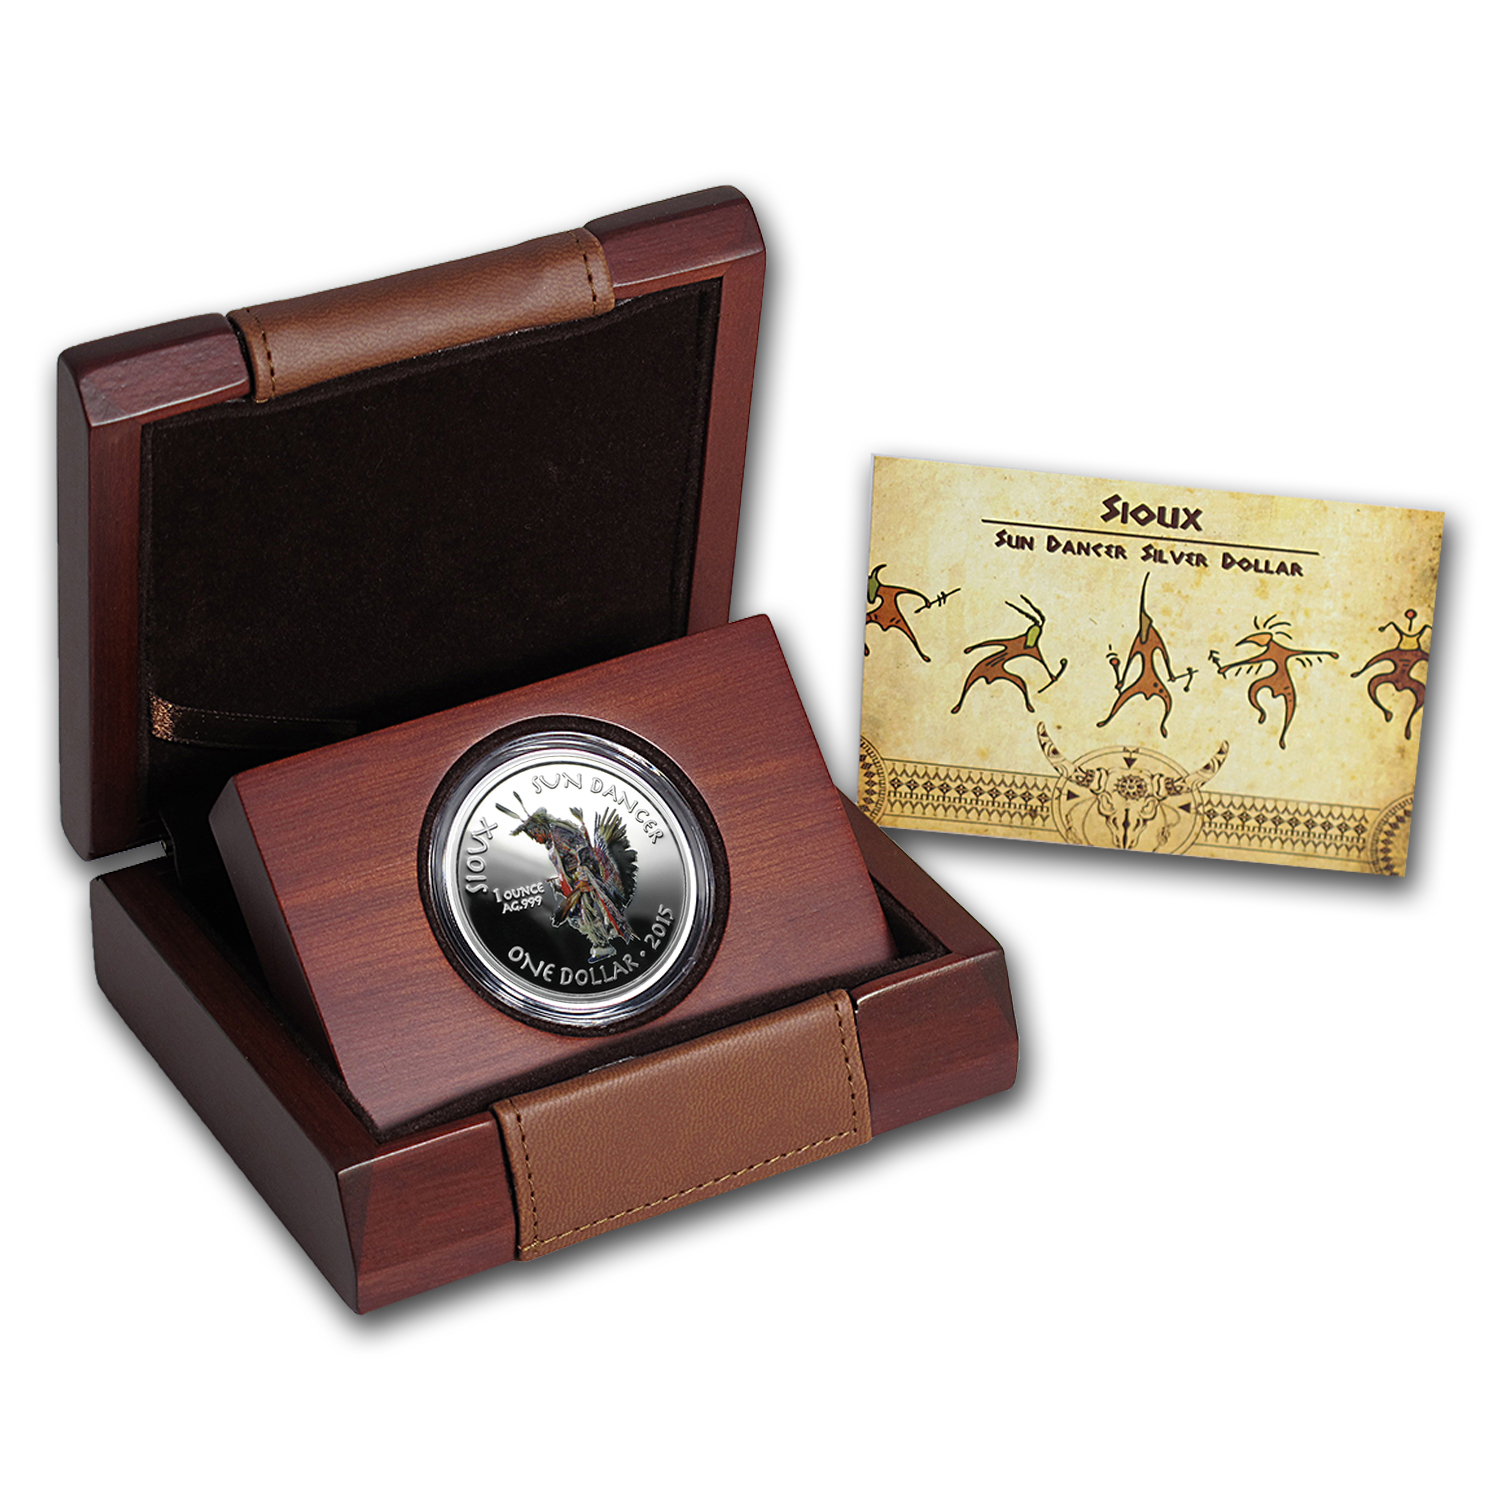 2015 1 oz Silver Proof Native American Mint $1 Sun Dancer